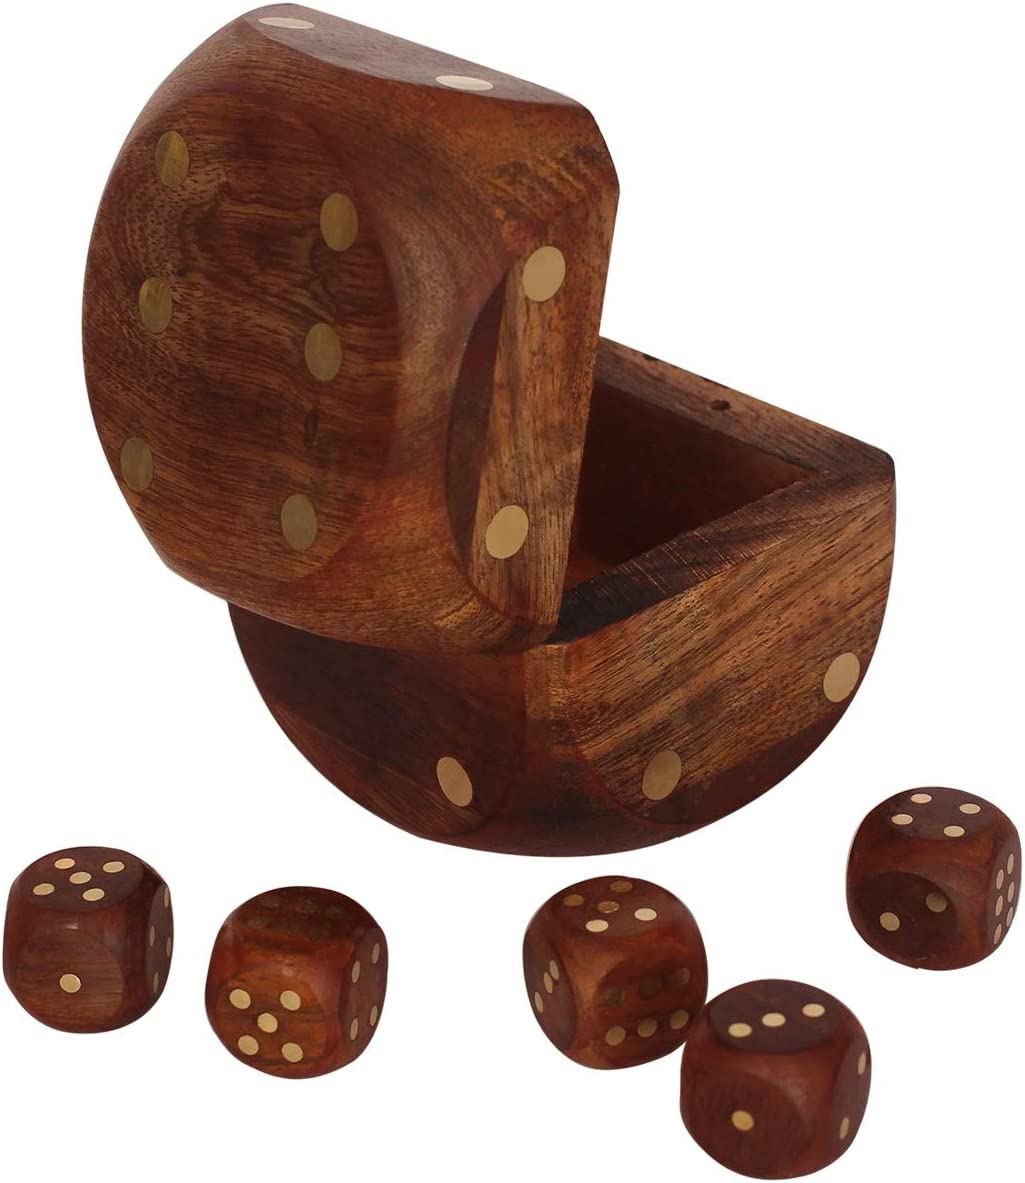 Handmade Indian Dice Game Set Decorative Storage Box - Includes 5 Wooden Dice